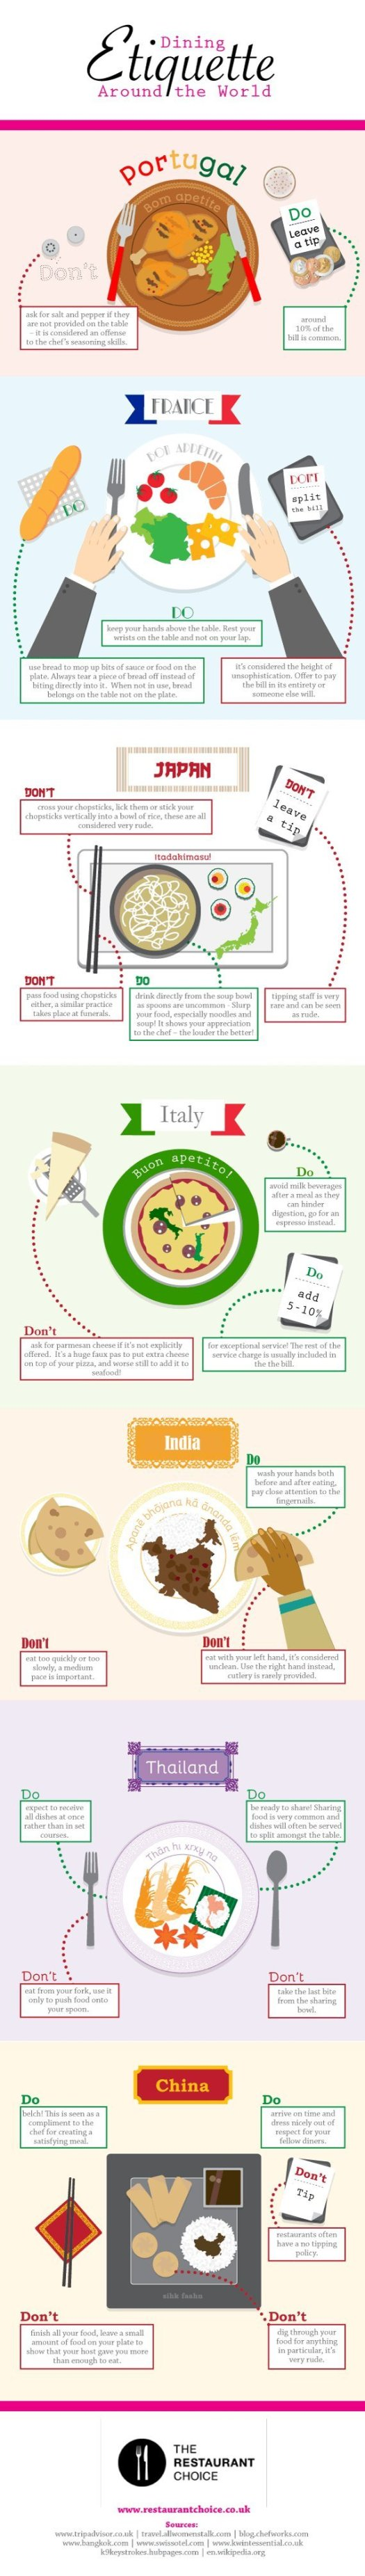 infographic with diffferent countries dining etiquette rules